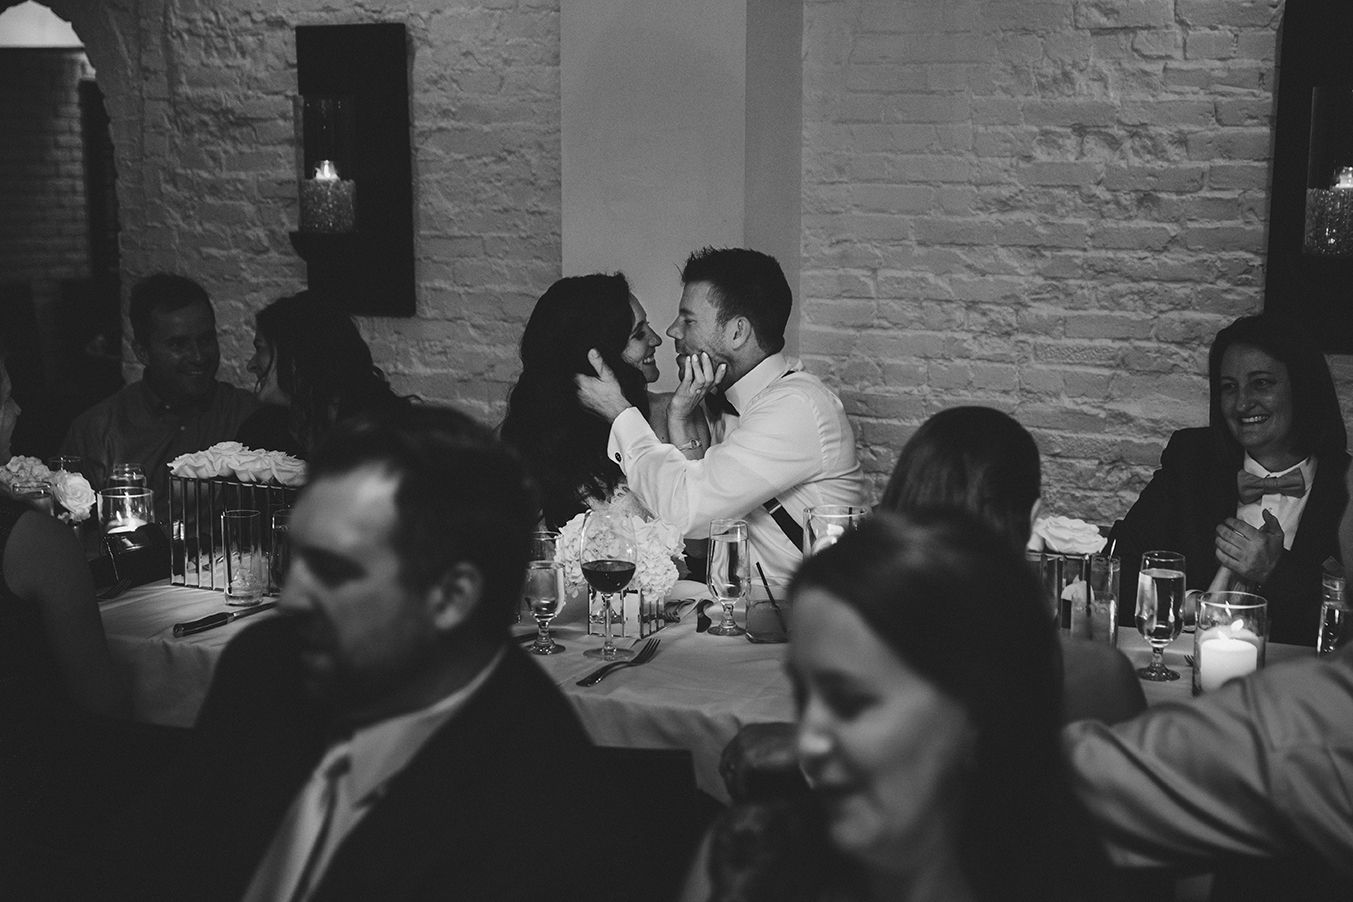 A documentary photograph of a bride and groom kissing during their